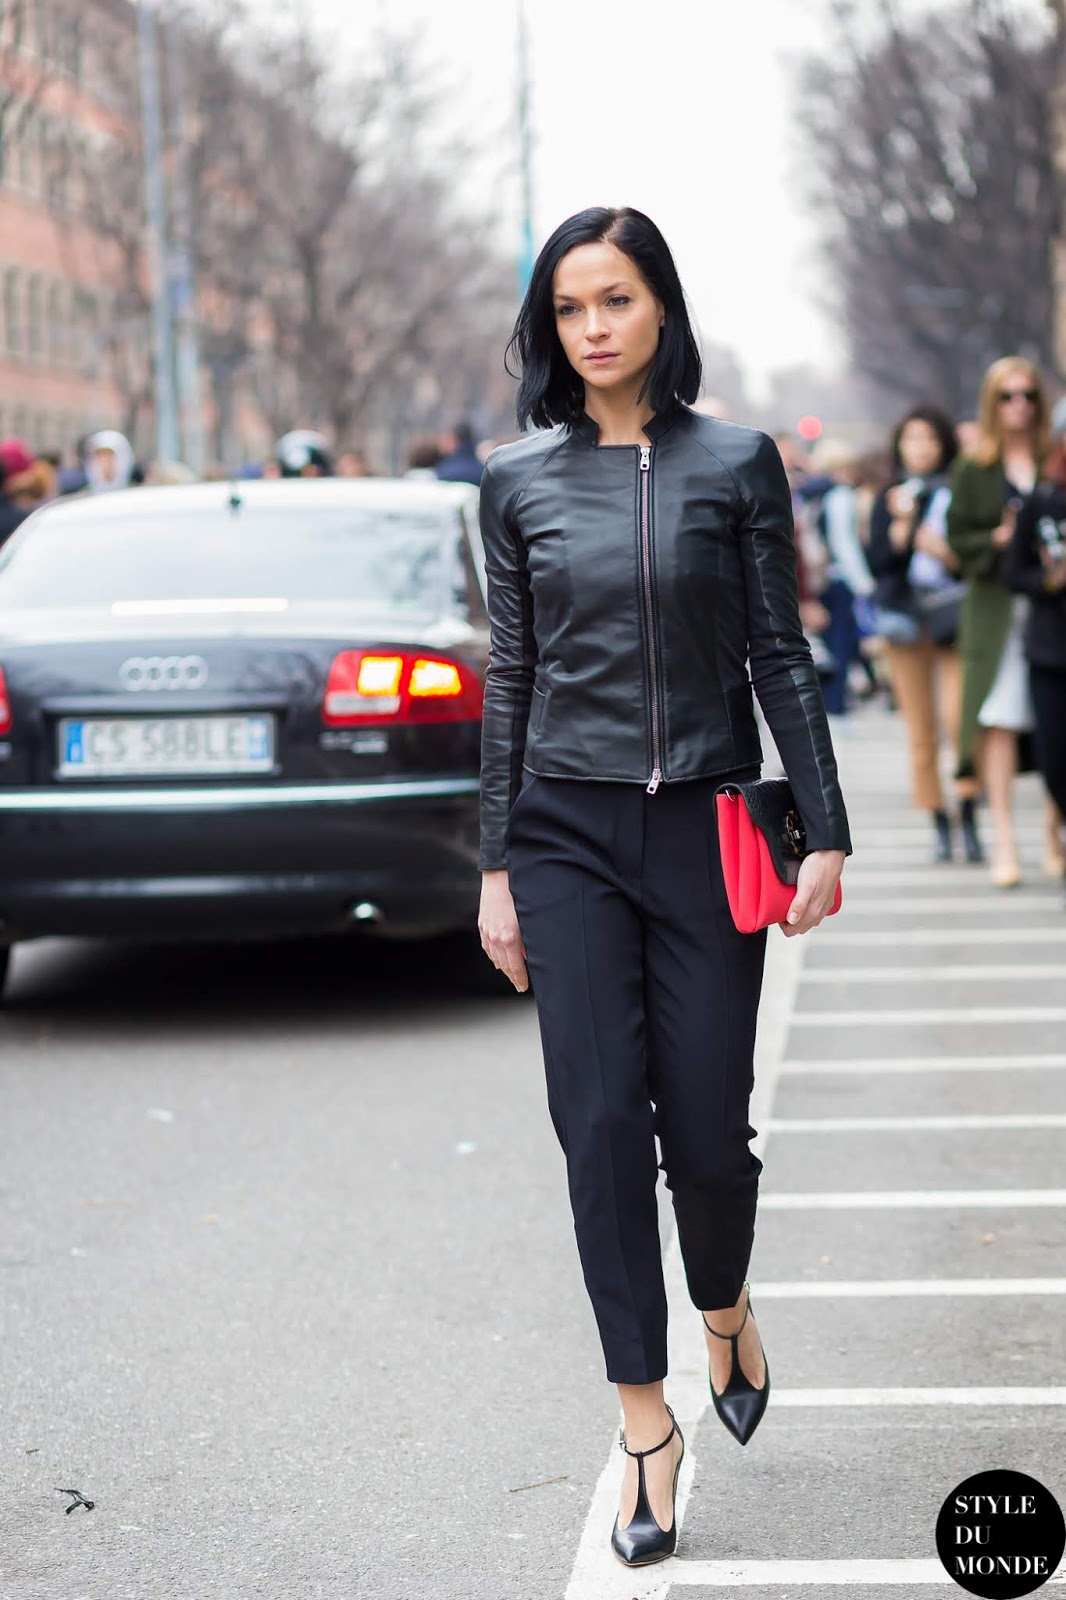 Swap Your Office Blazer for a Chic Leather Jacket